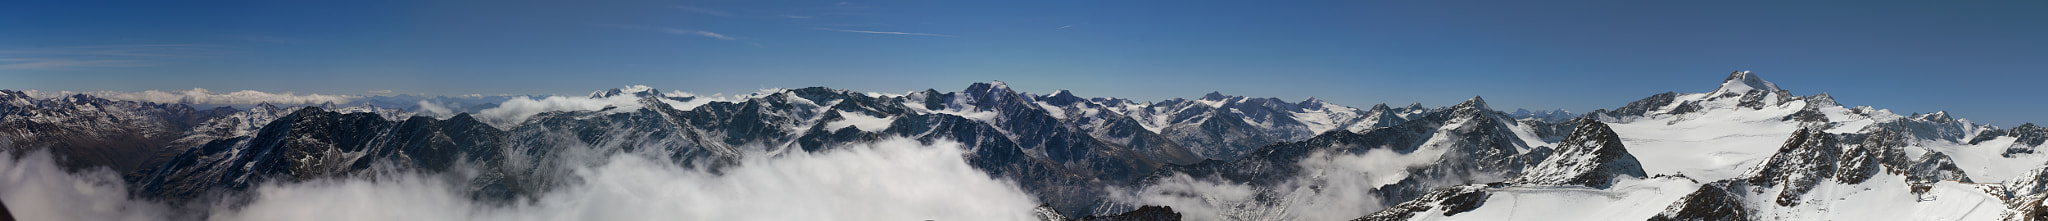 Photograph Panoramic view from the Rettenbachgletscher by Robert Steichele on 500px